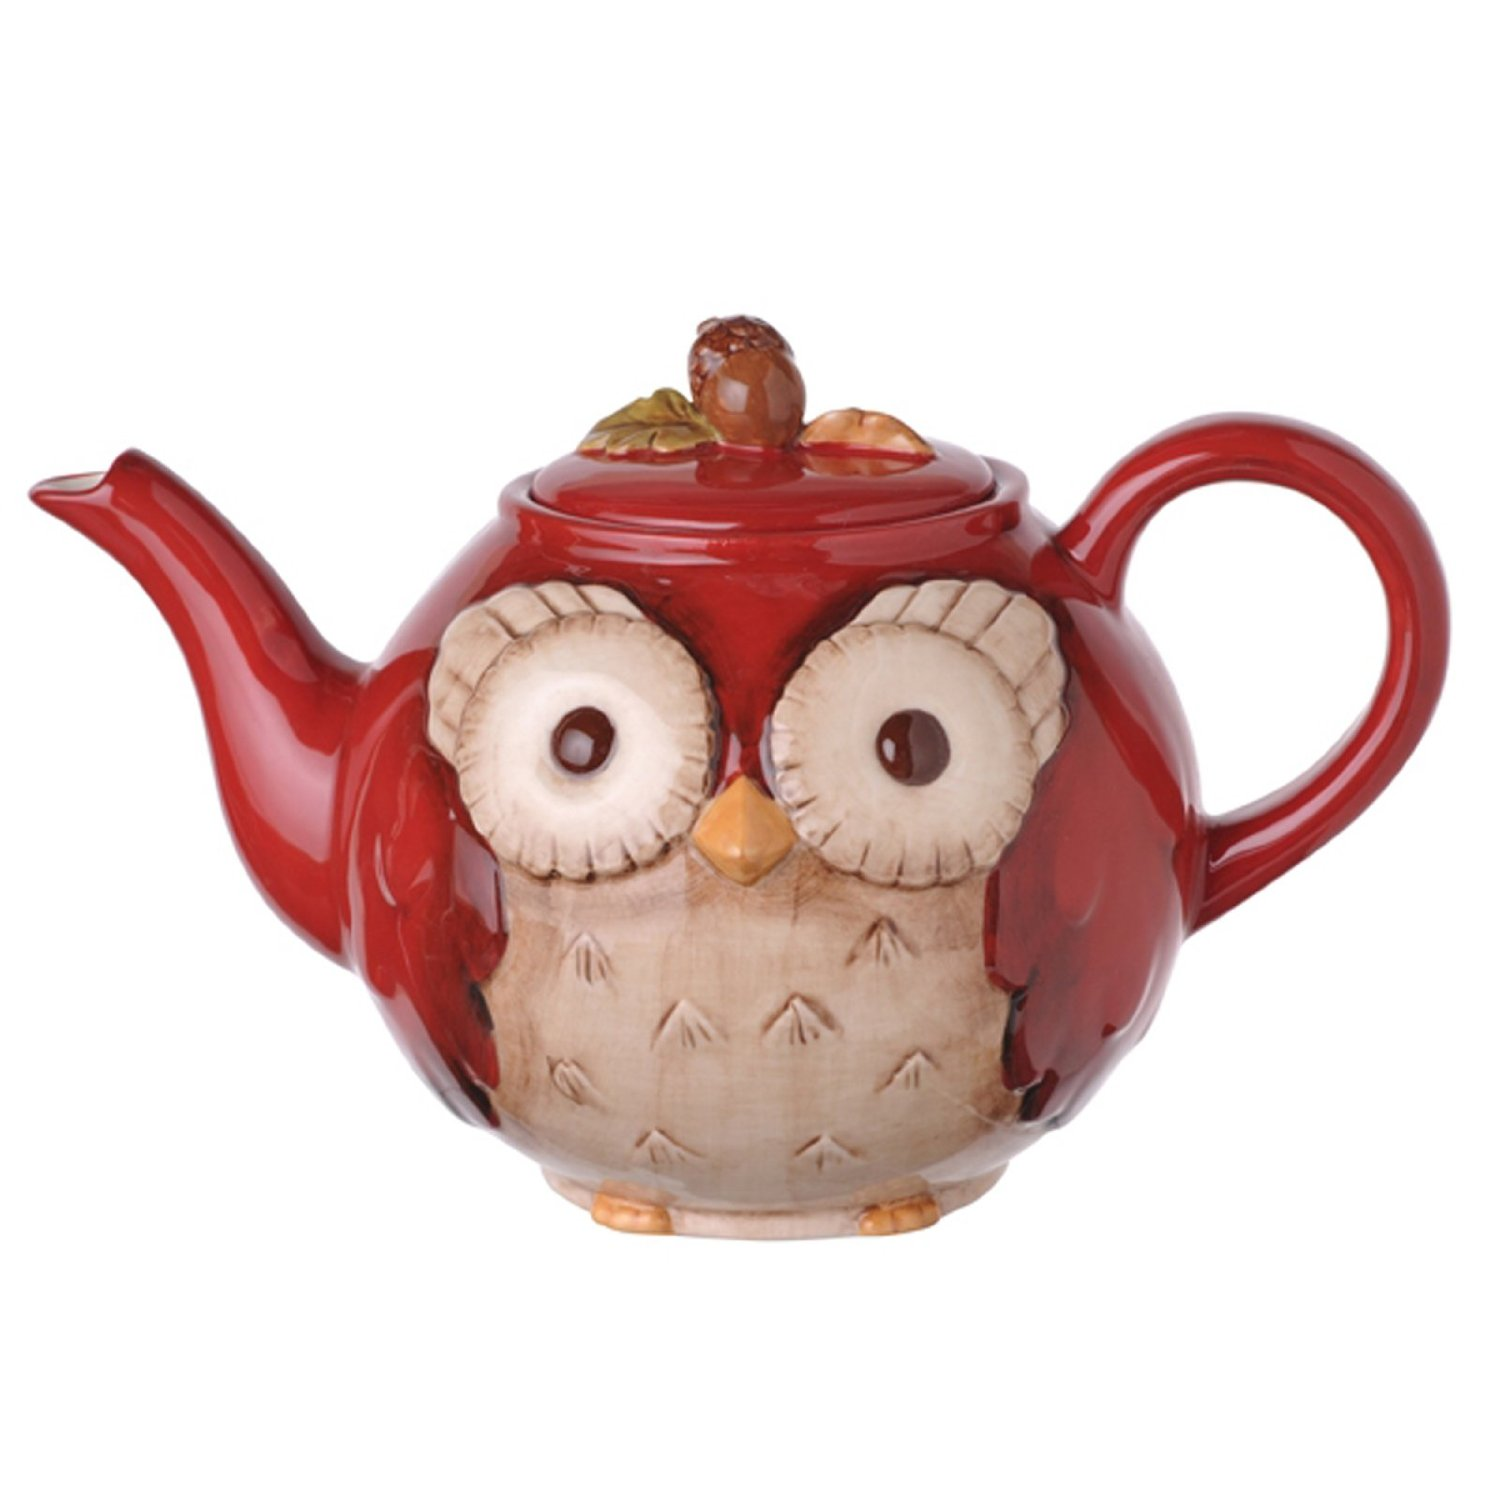 Owl Teapot that is Microwave and Dishwaser Safe!